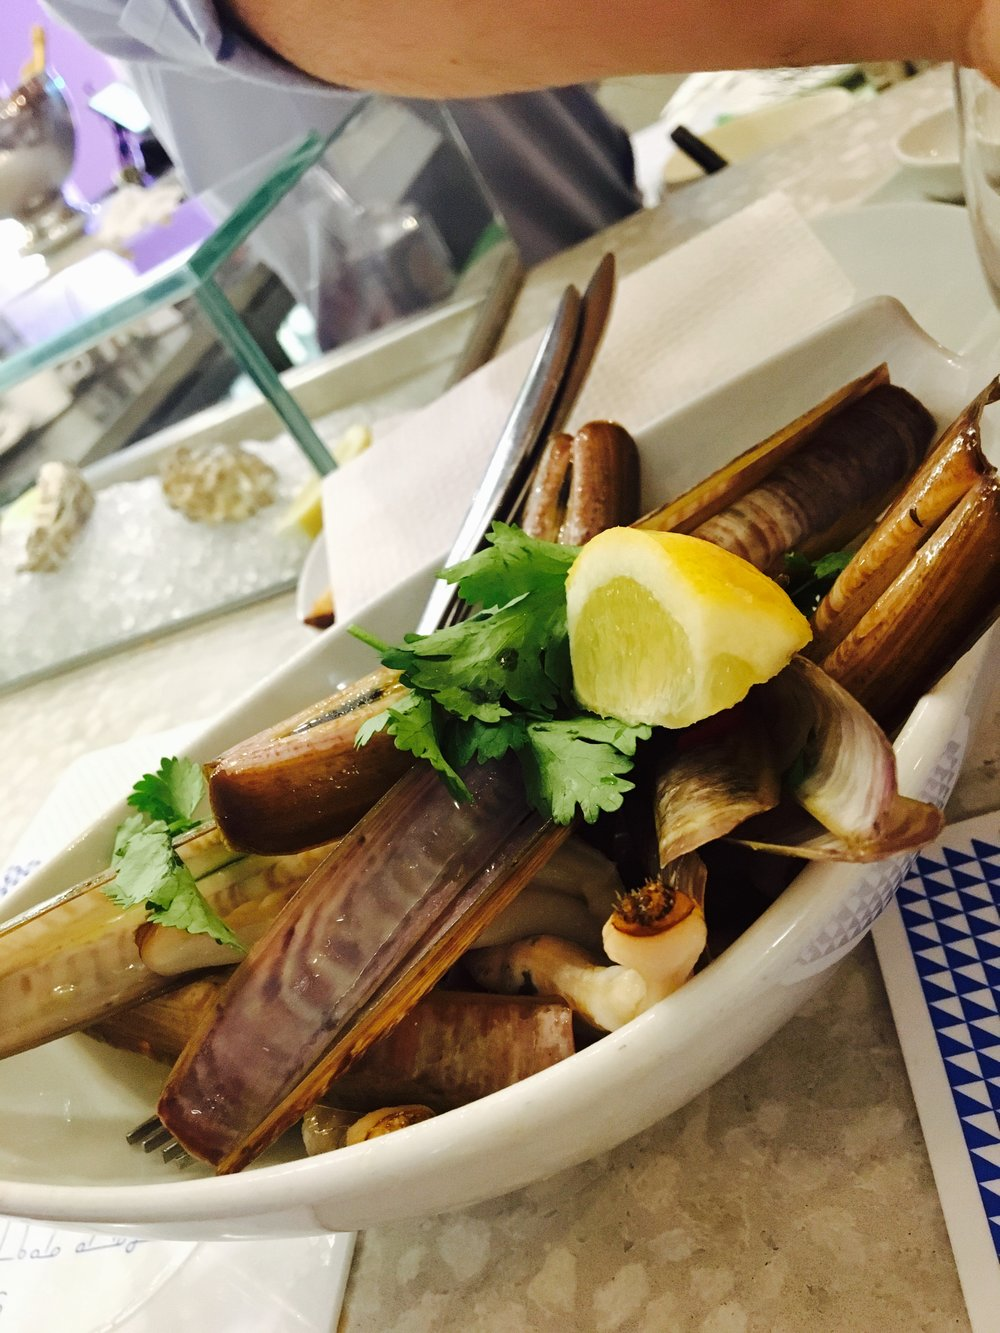 Seafood dinner at Ostras & Coisas: my stomach's introduction to a little thing called razor clams.